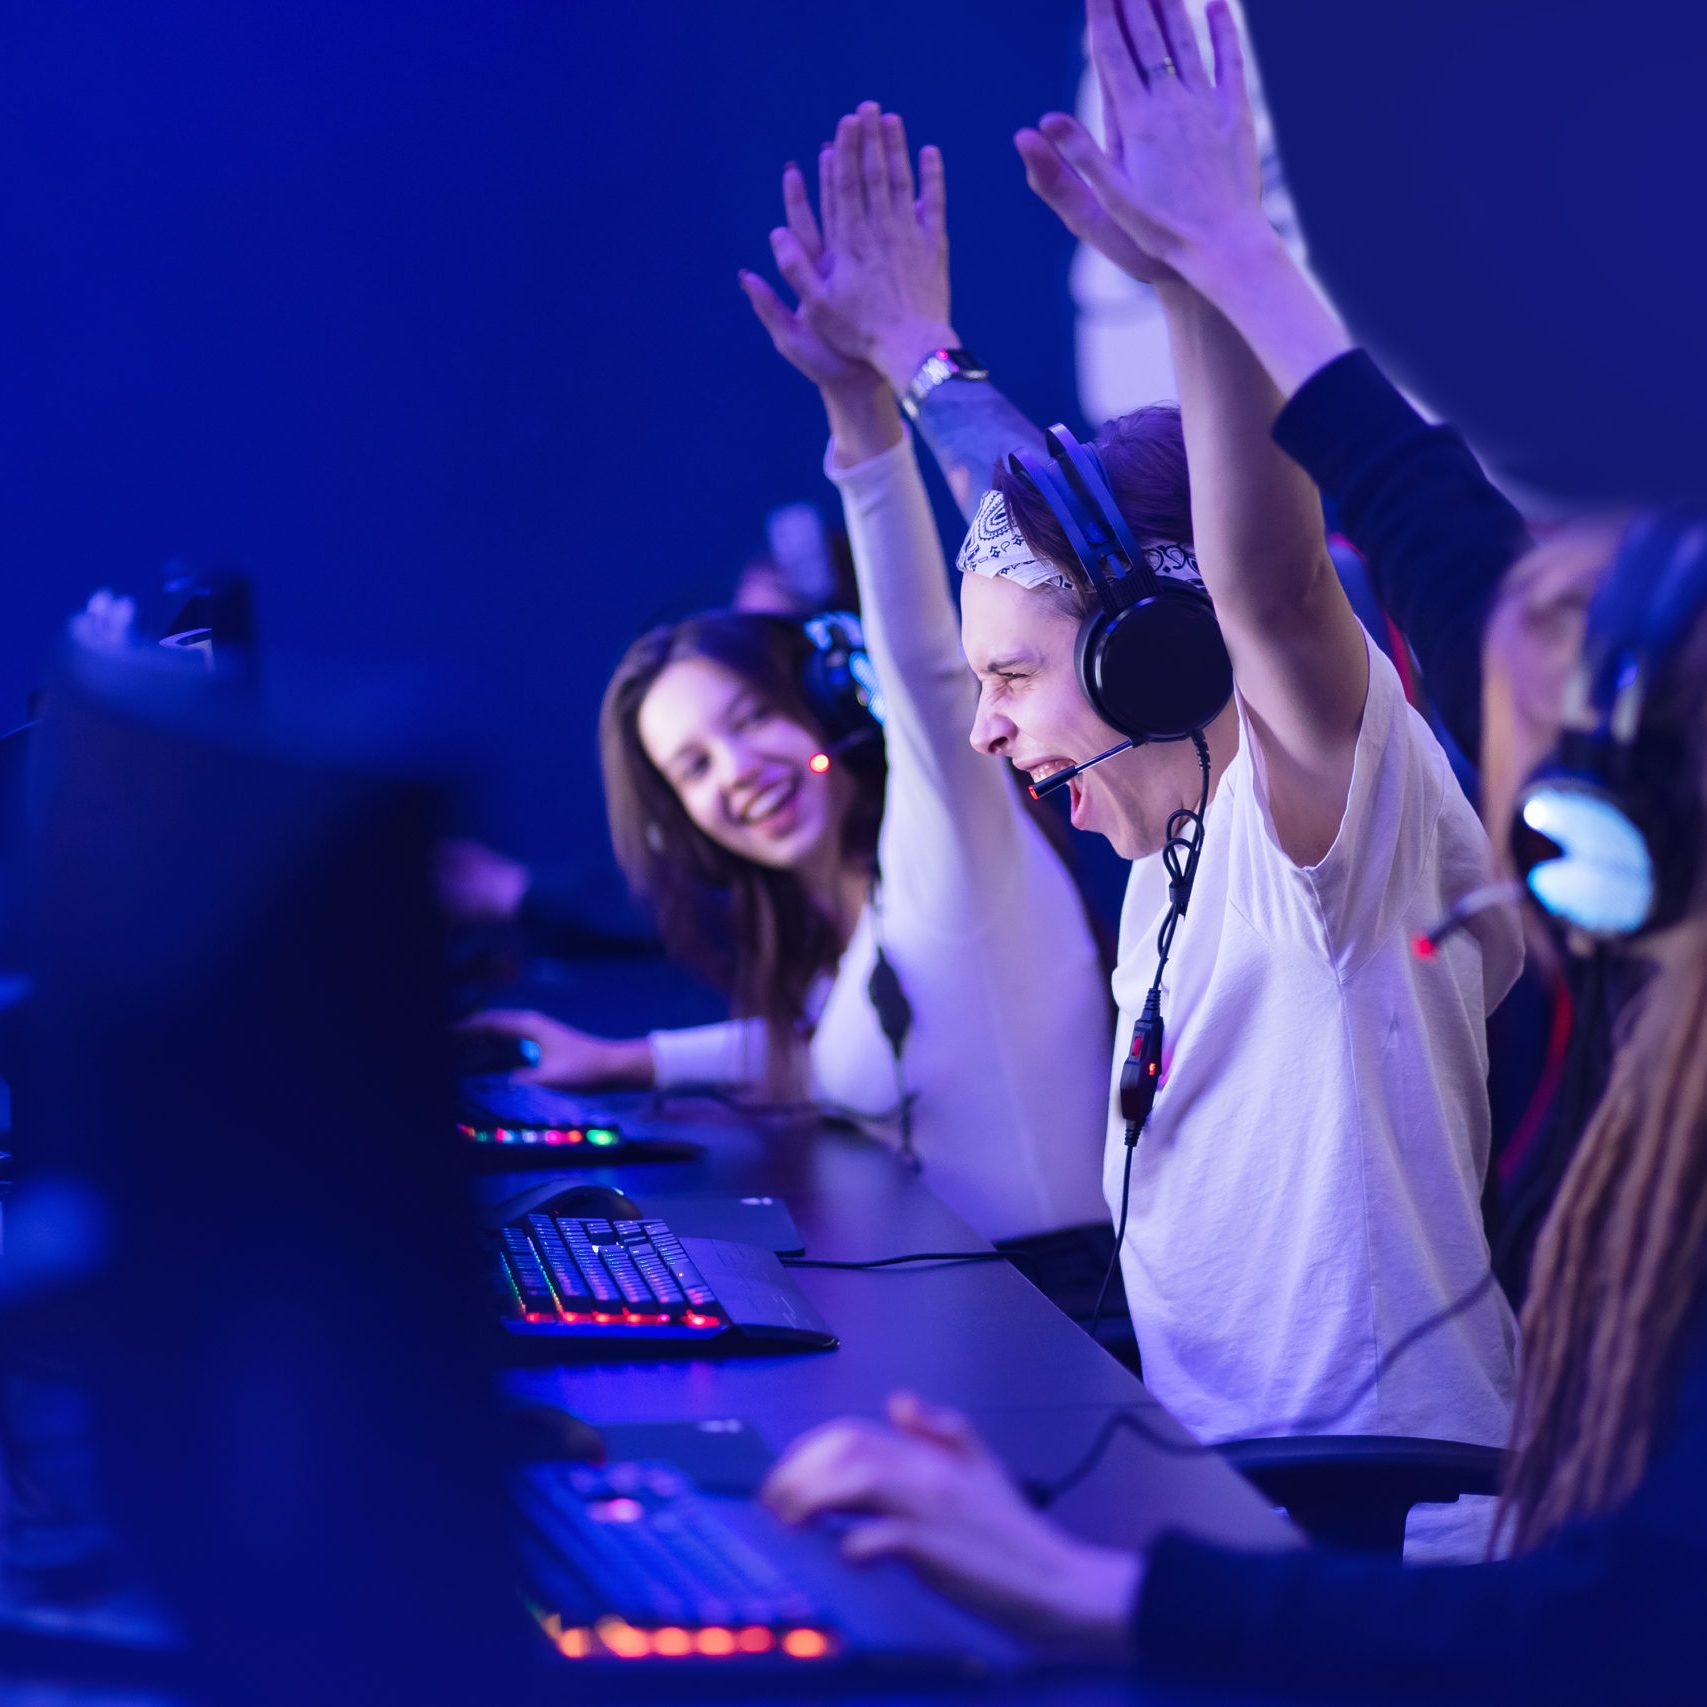 Team professional gamer playing winning tournaments online games computer.